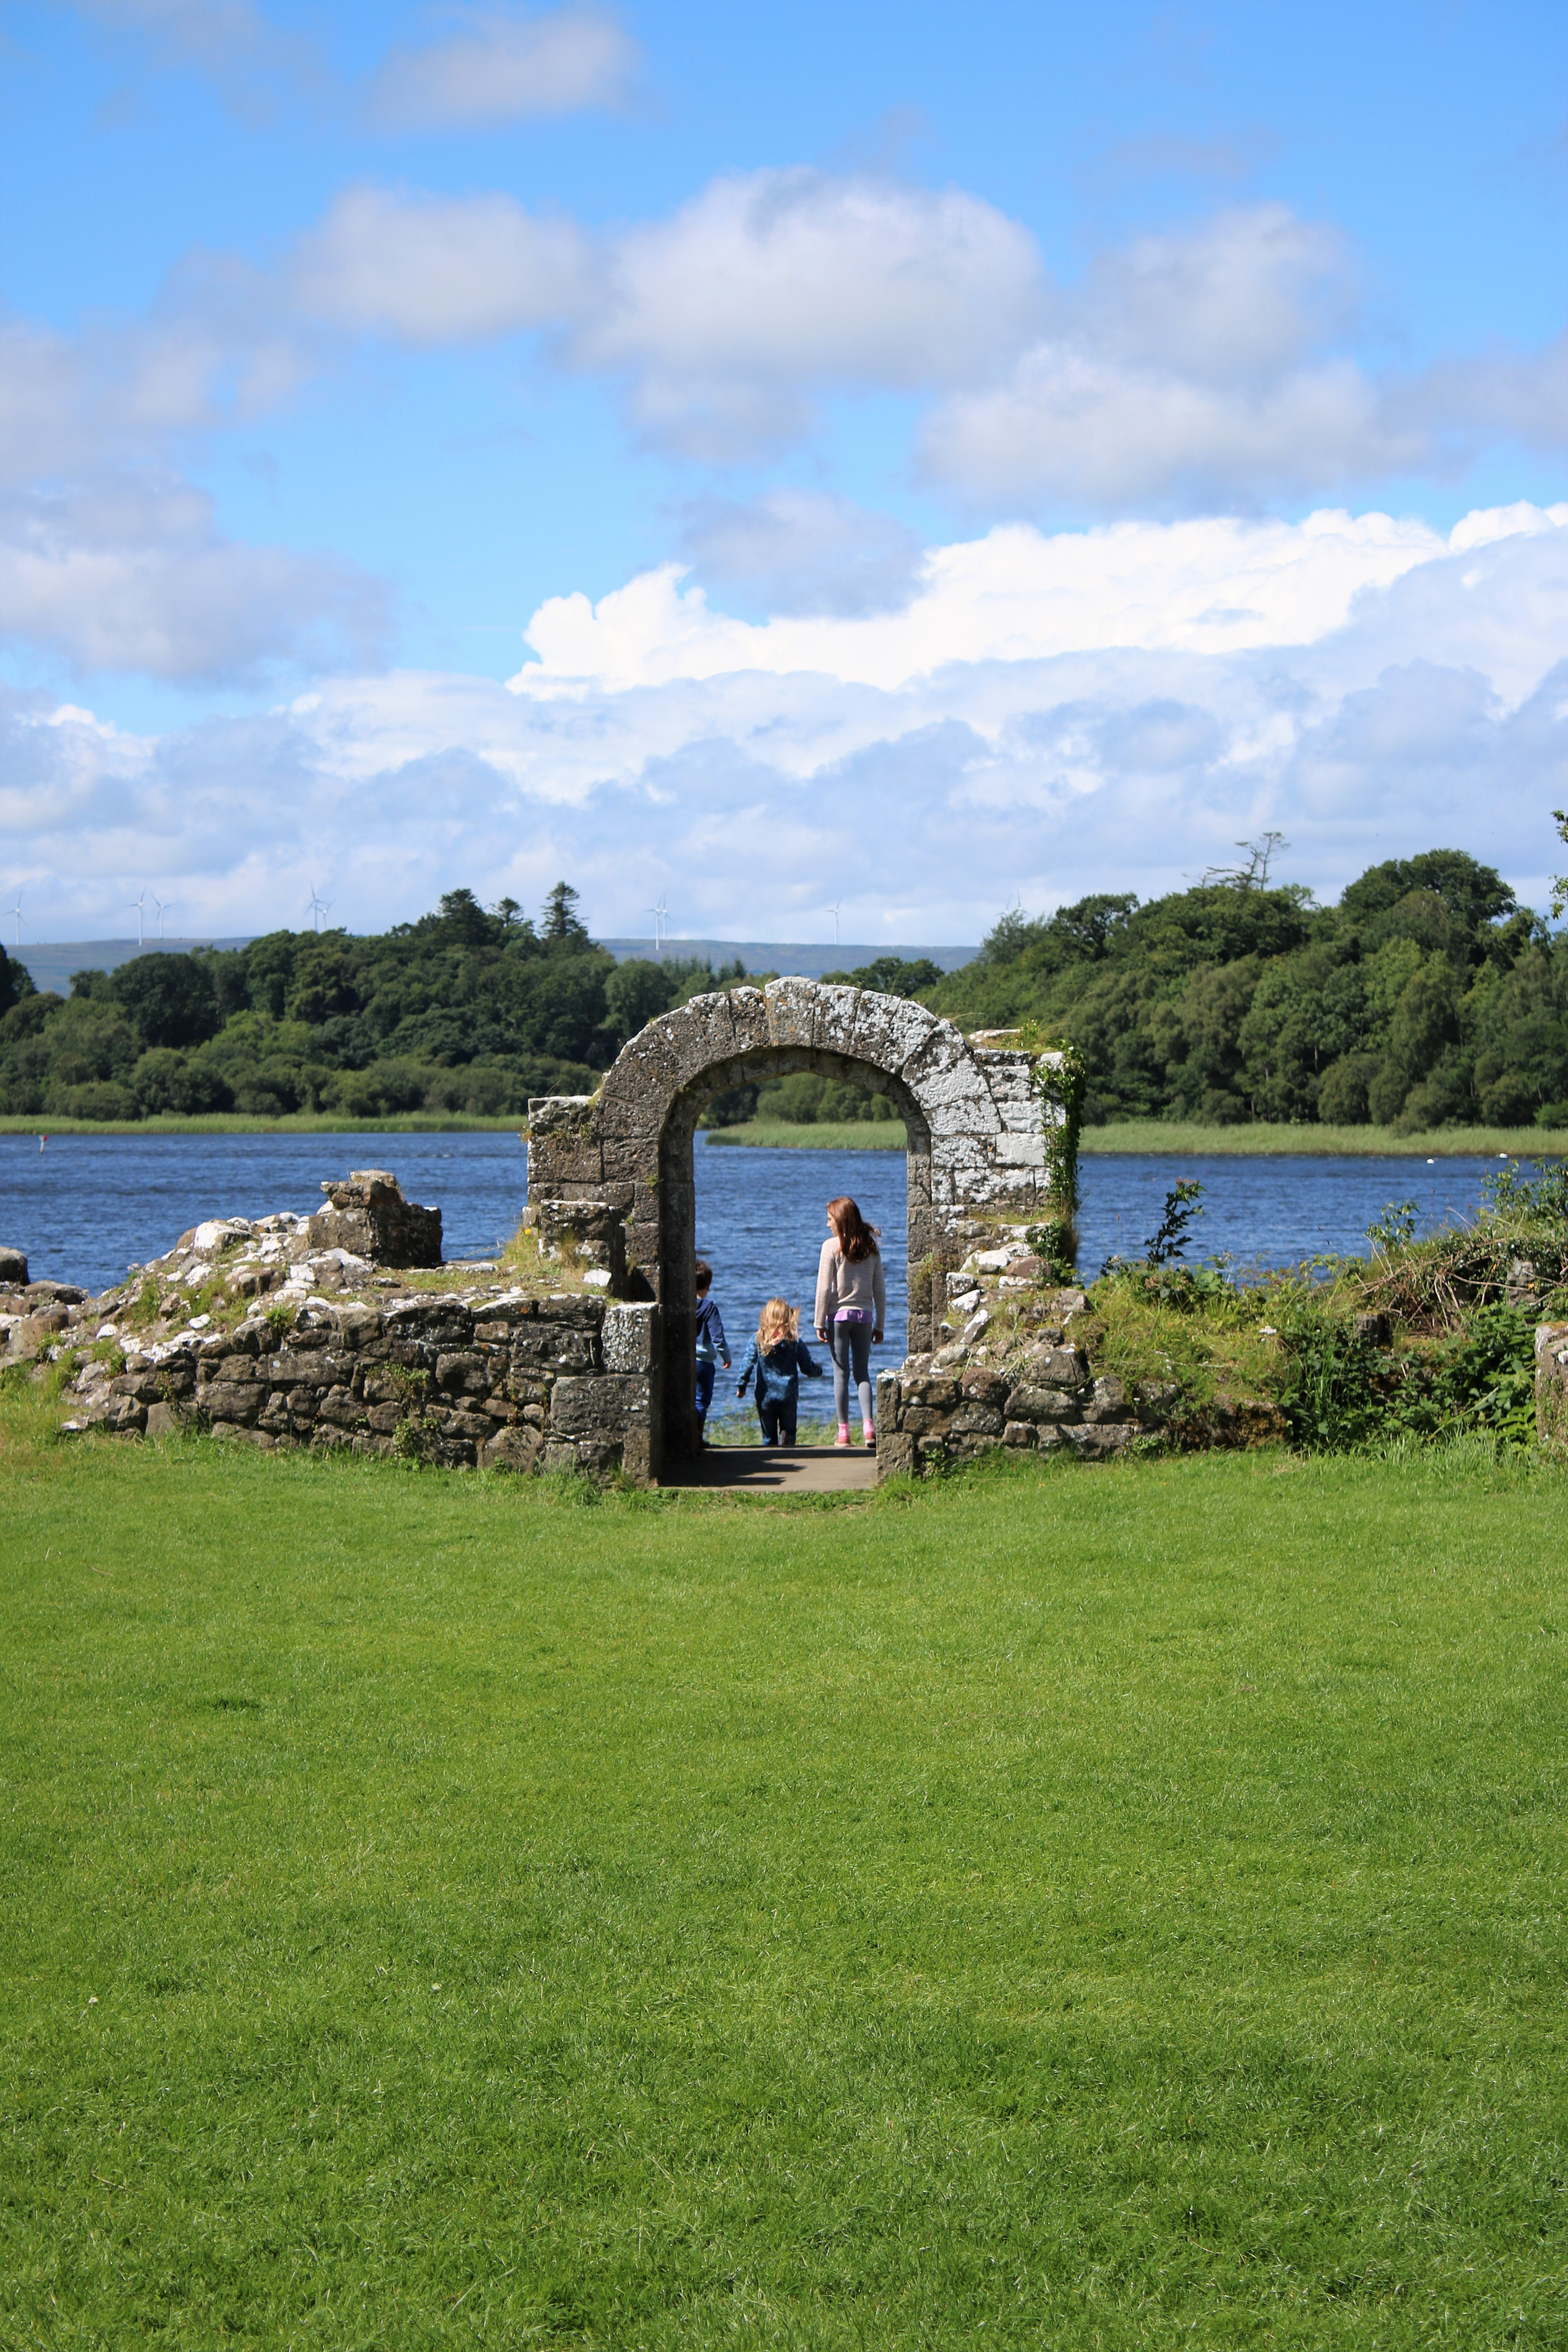 castle ruins archway overlooking lake